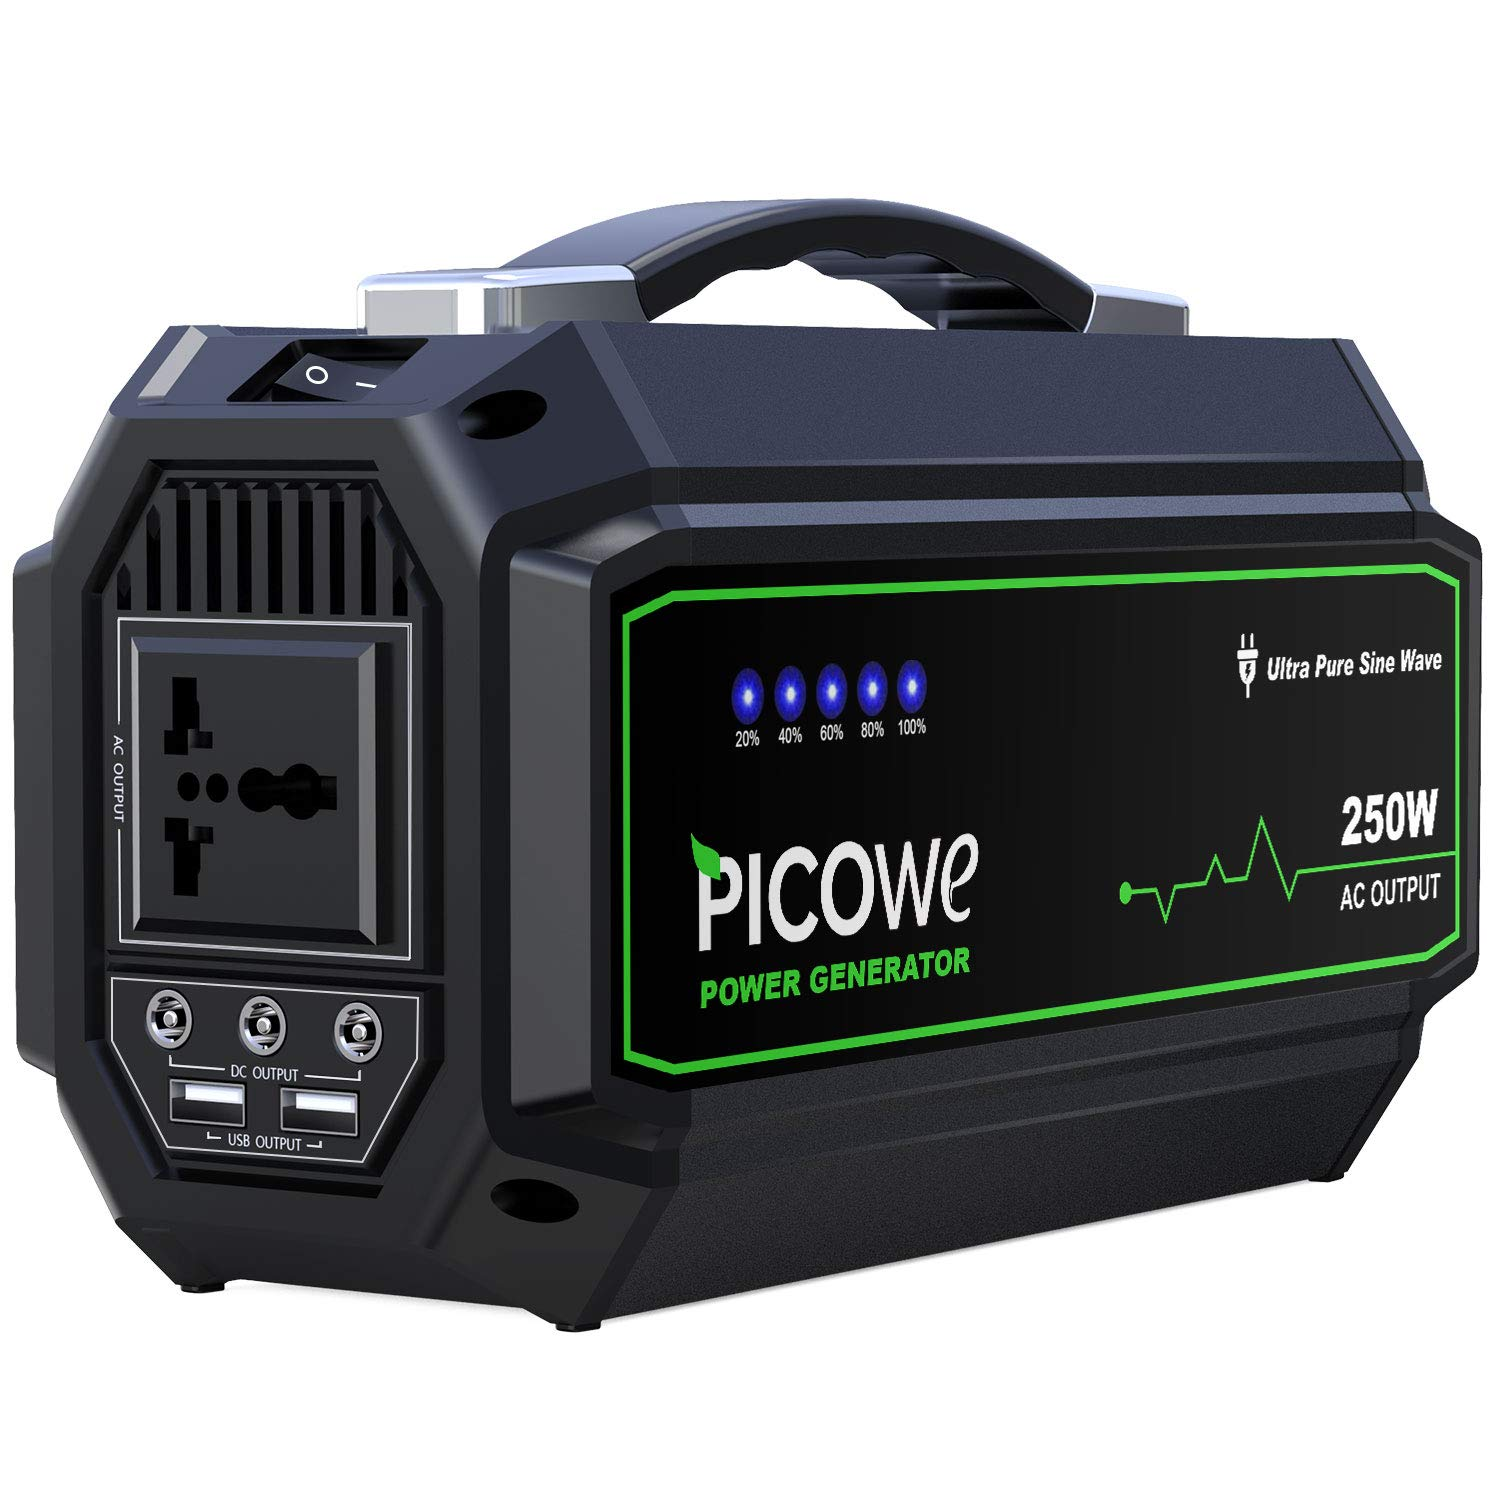 Picowe Portable Power Station 250Wh Rechargeable Lithium Battery Pack Solar Power Generator 110V AC Outlet 3 DC Port 2 USB Ports Emergency Power Supply Backup for CPAP Camping Fishing Travel by Picowe